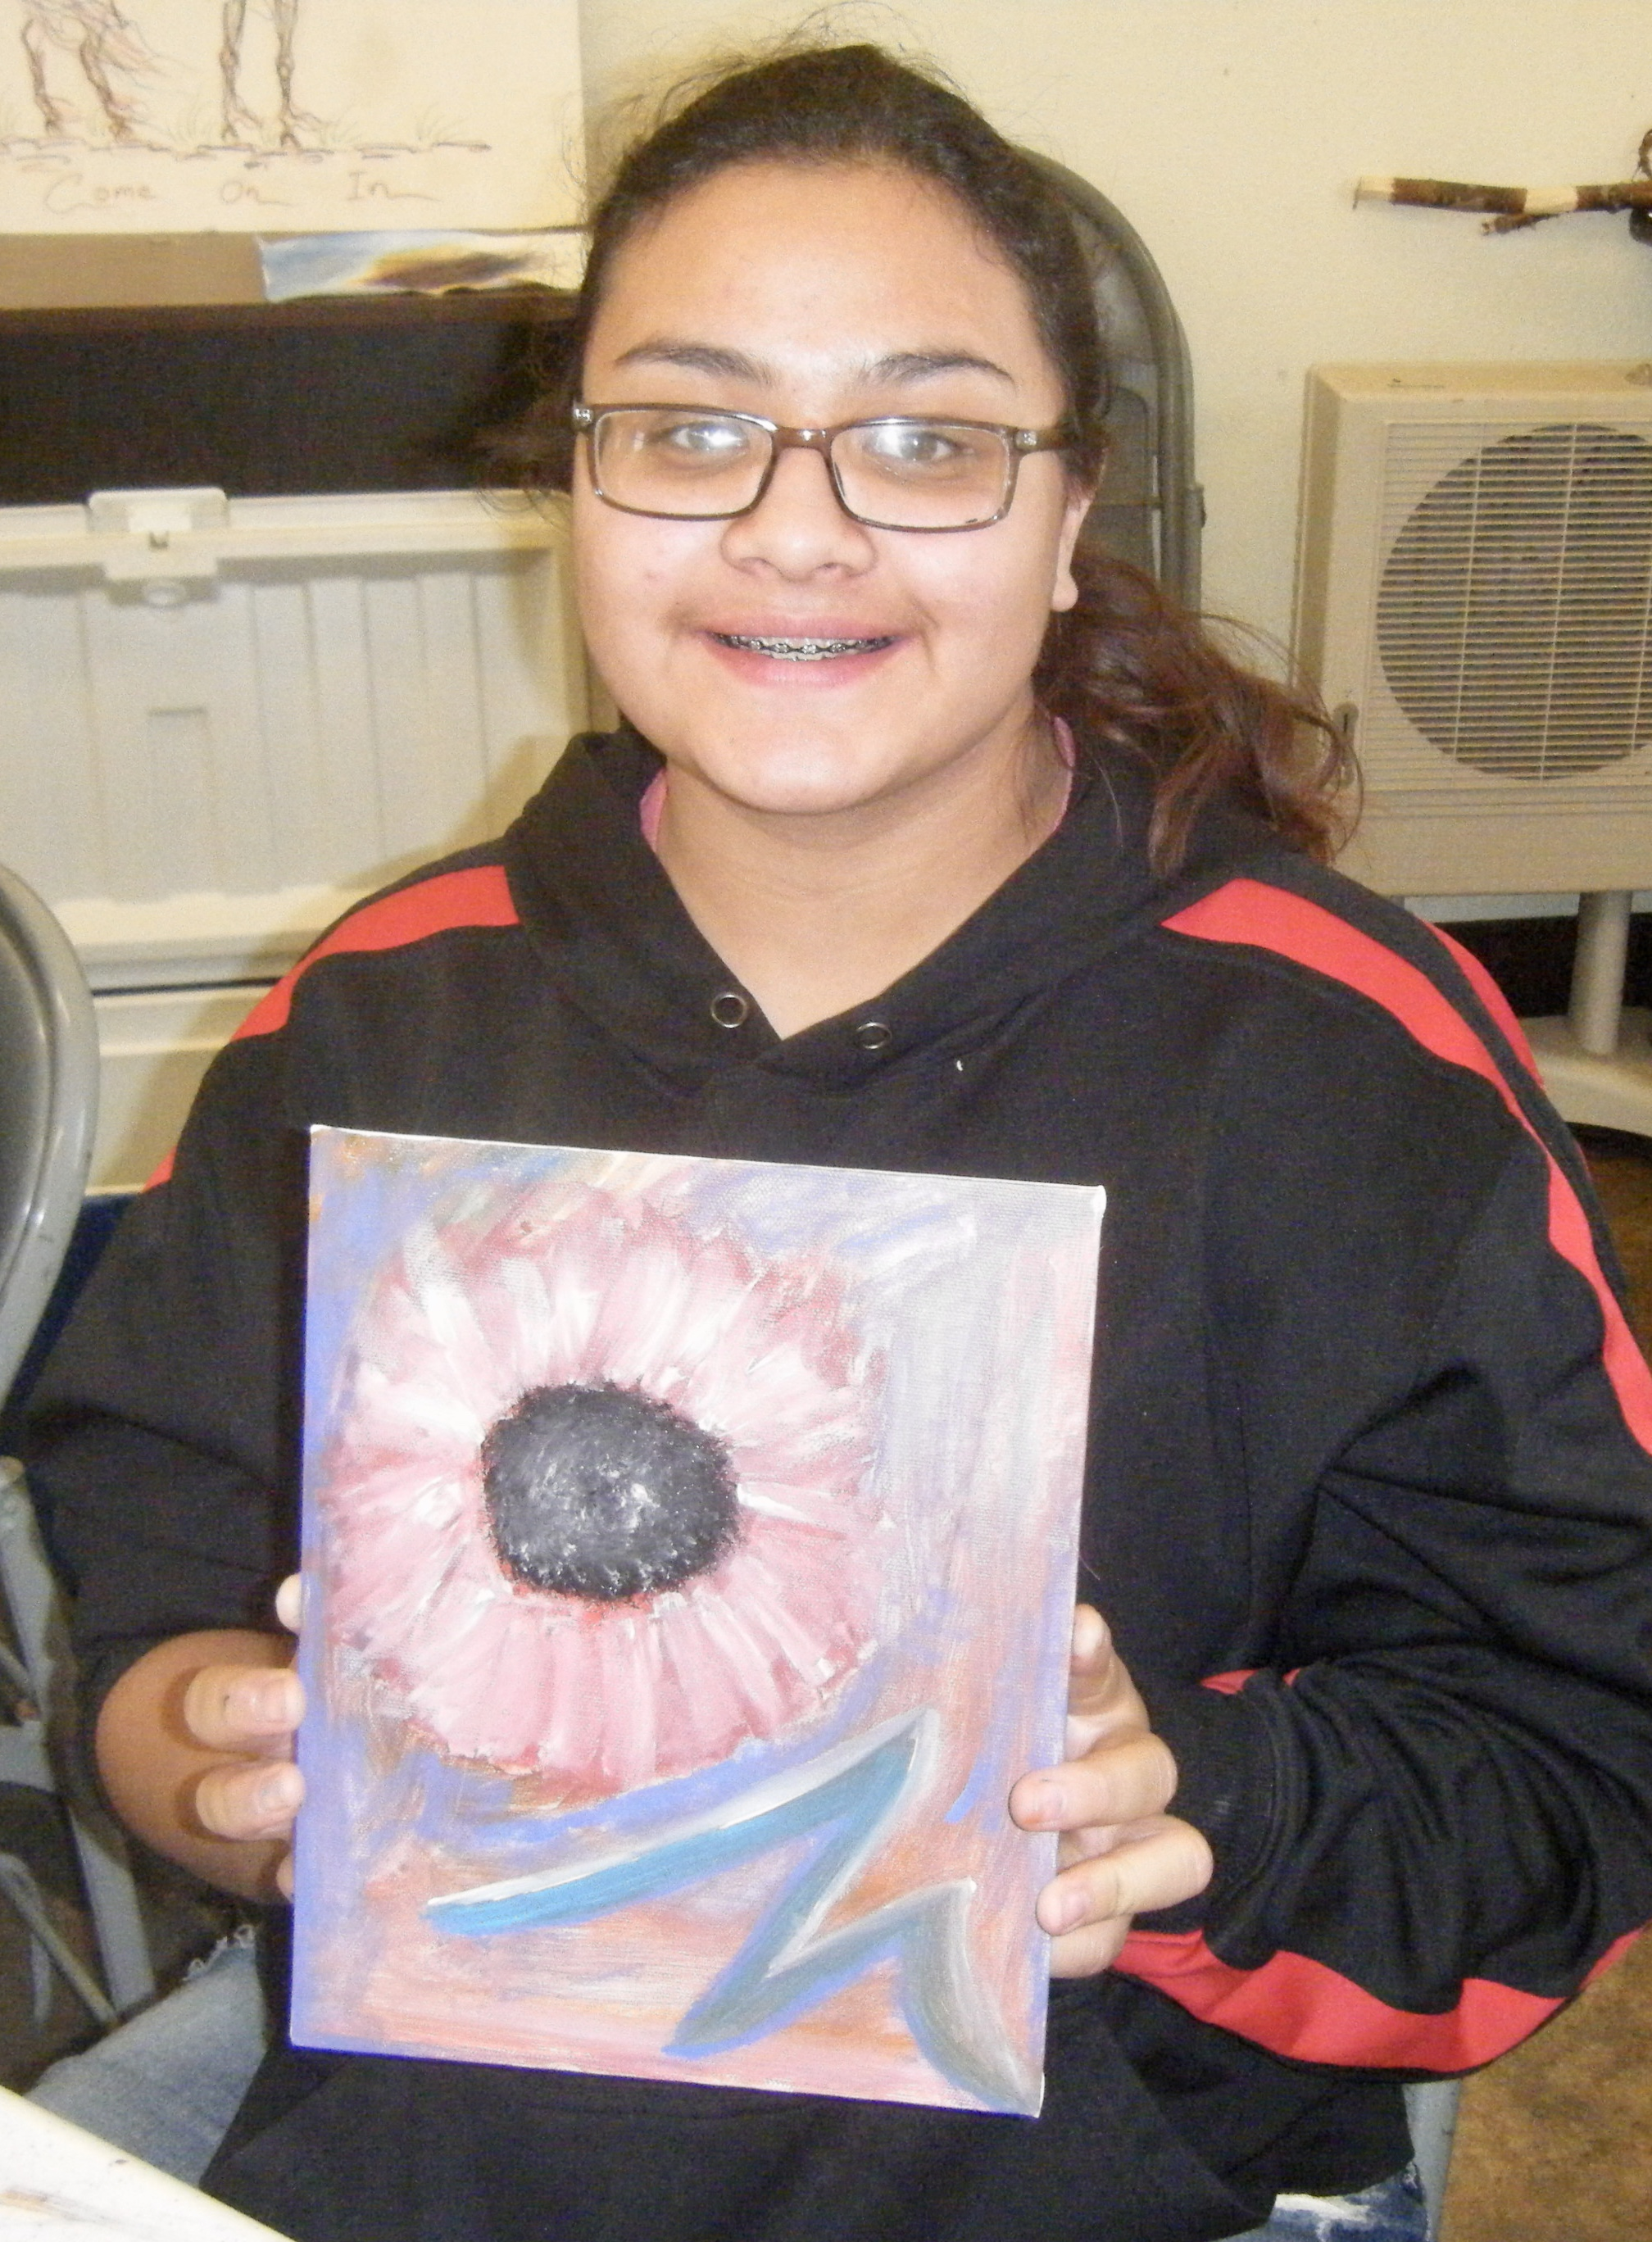 Mariah shows her artwork during the Acrylic Painting Workshop.